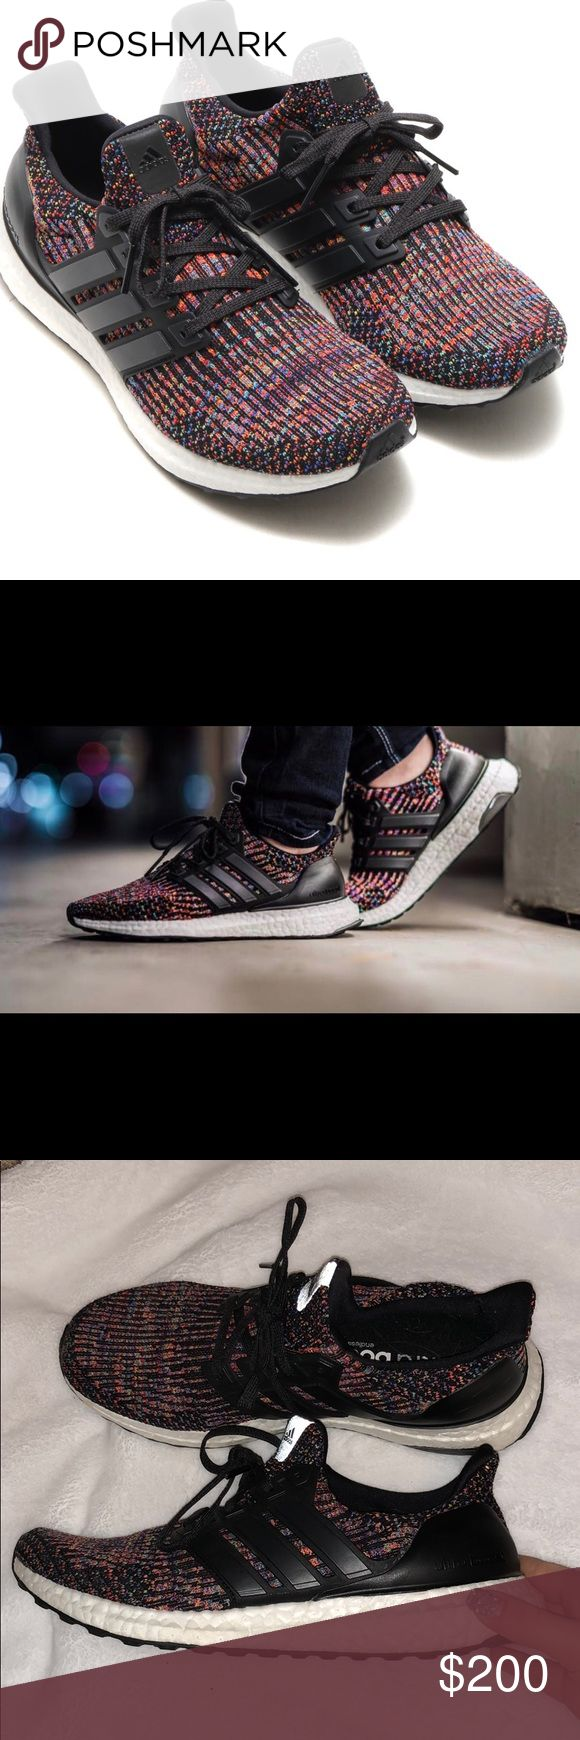 adidas ultra boost 3.0 multi-color 🌈 i bought these beauties at a store in cannes, france! worn once and sold out everywhere, they make a perfect addition to your closet 🌈✨ small scratches shown in last 2 photos, NOT noticeable at all! not in a rush to sell so please, no lowball offers and no trades 🚫 adidas Shoes Sneakers